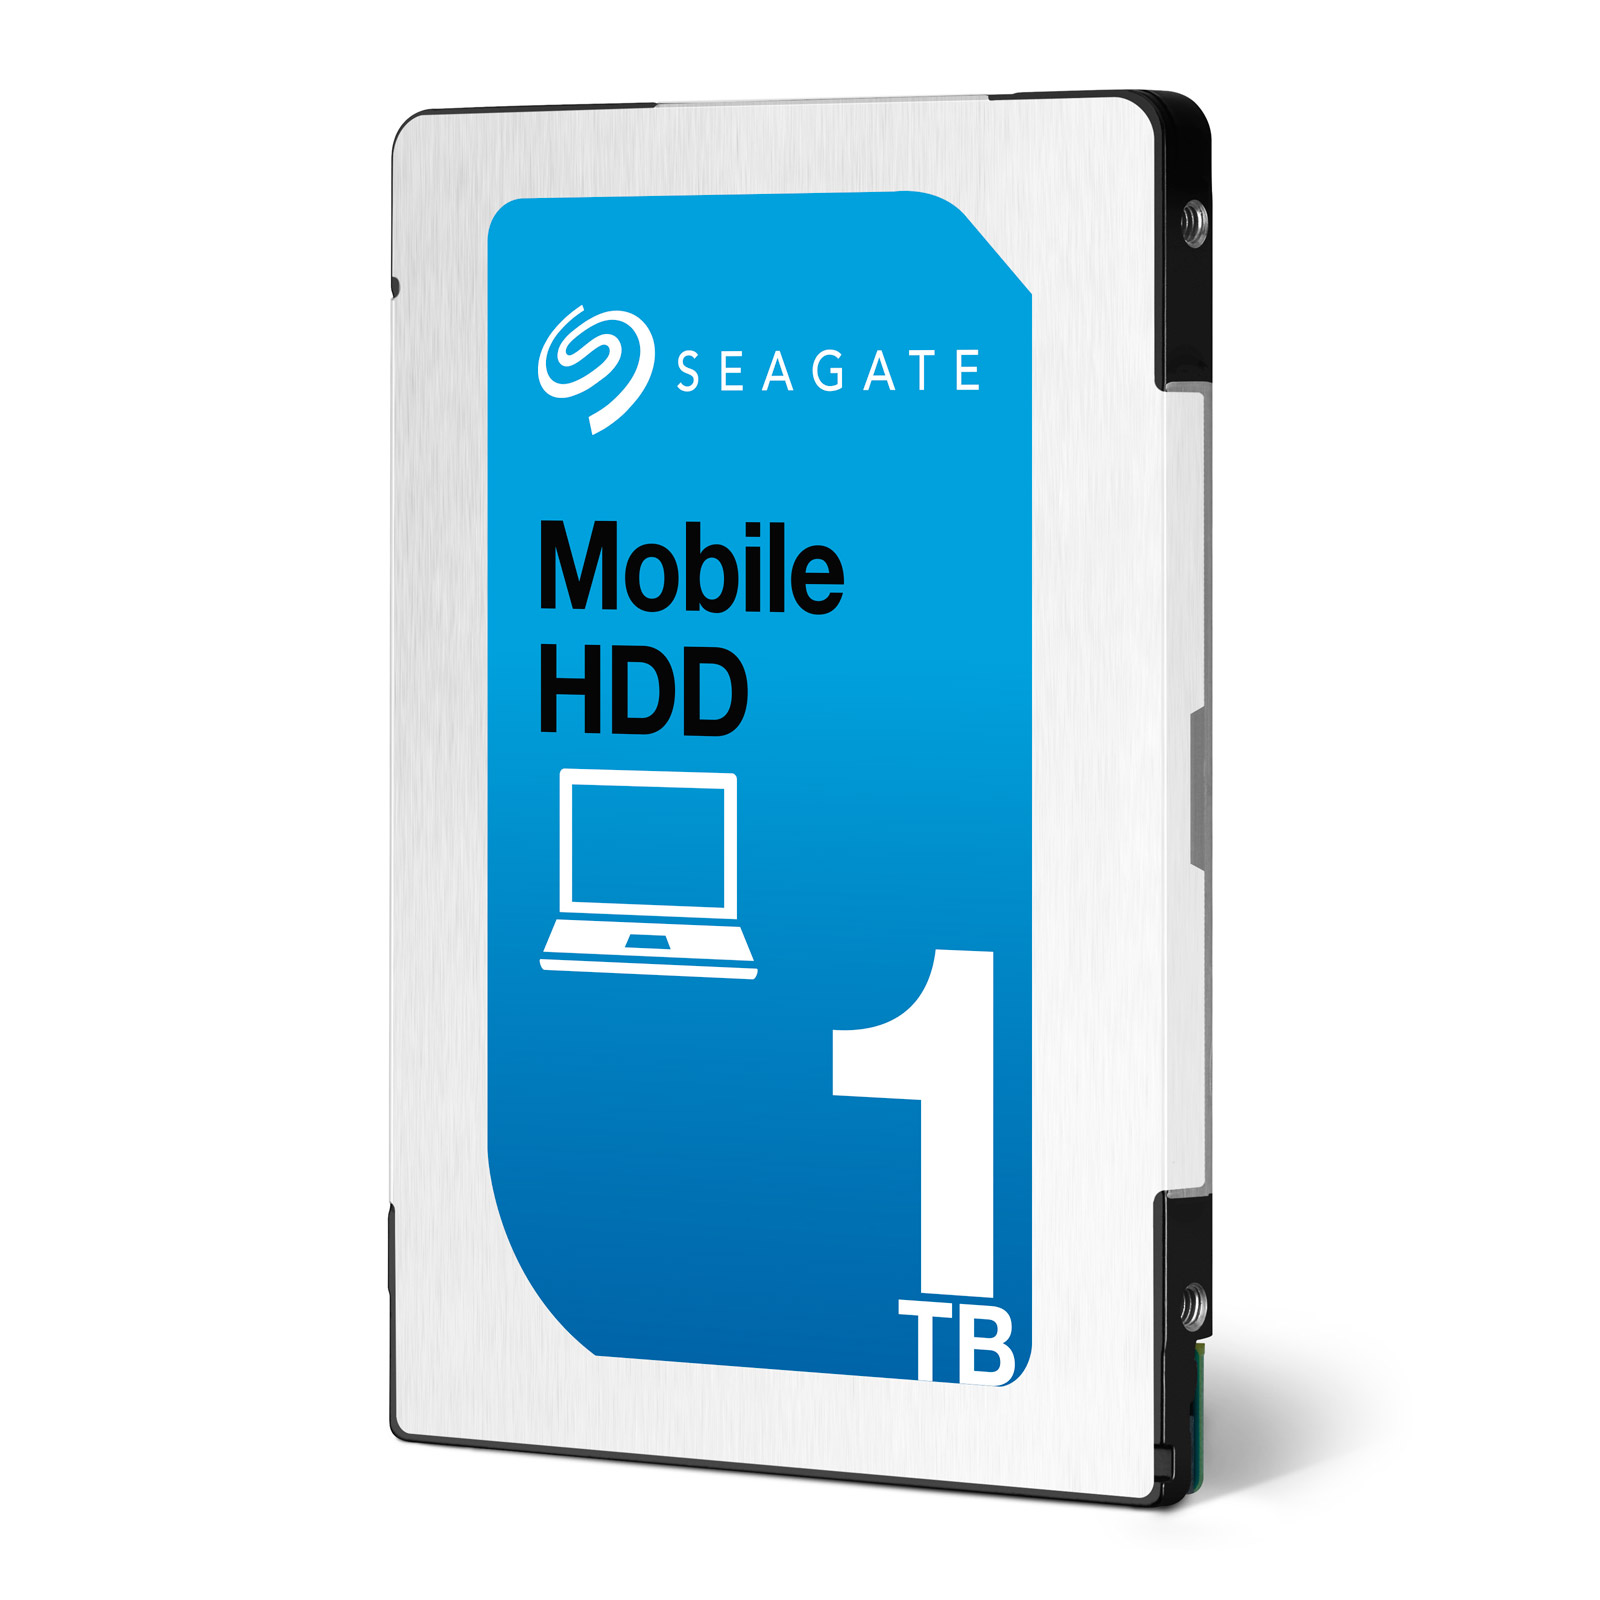 seagate mobile hdd 1 to disque dur interne seagate. Black Bedroom Furniture Sets. Home Design Ideas